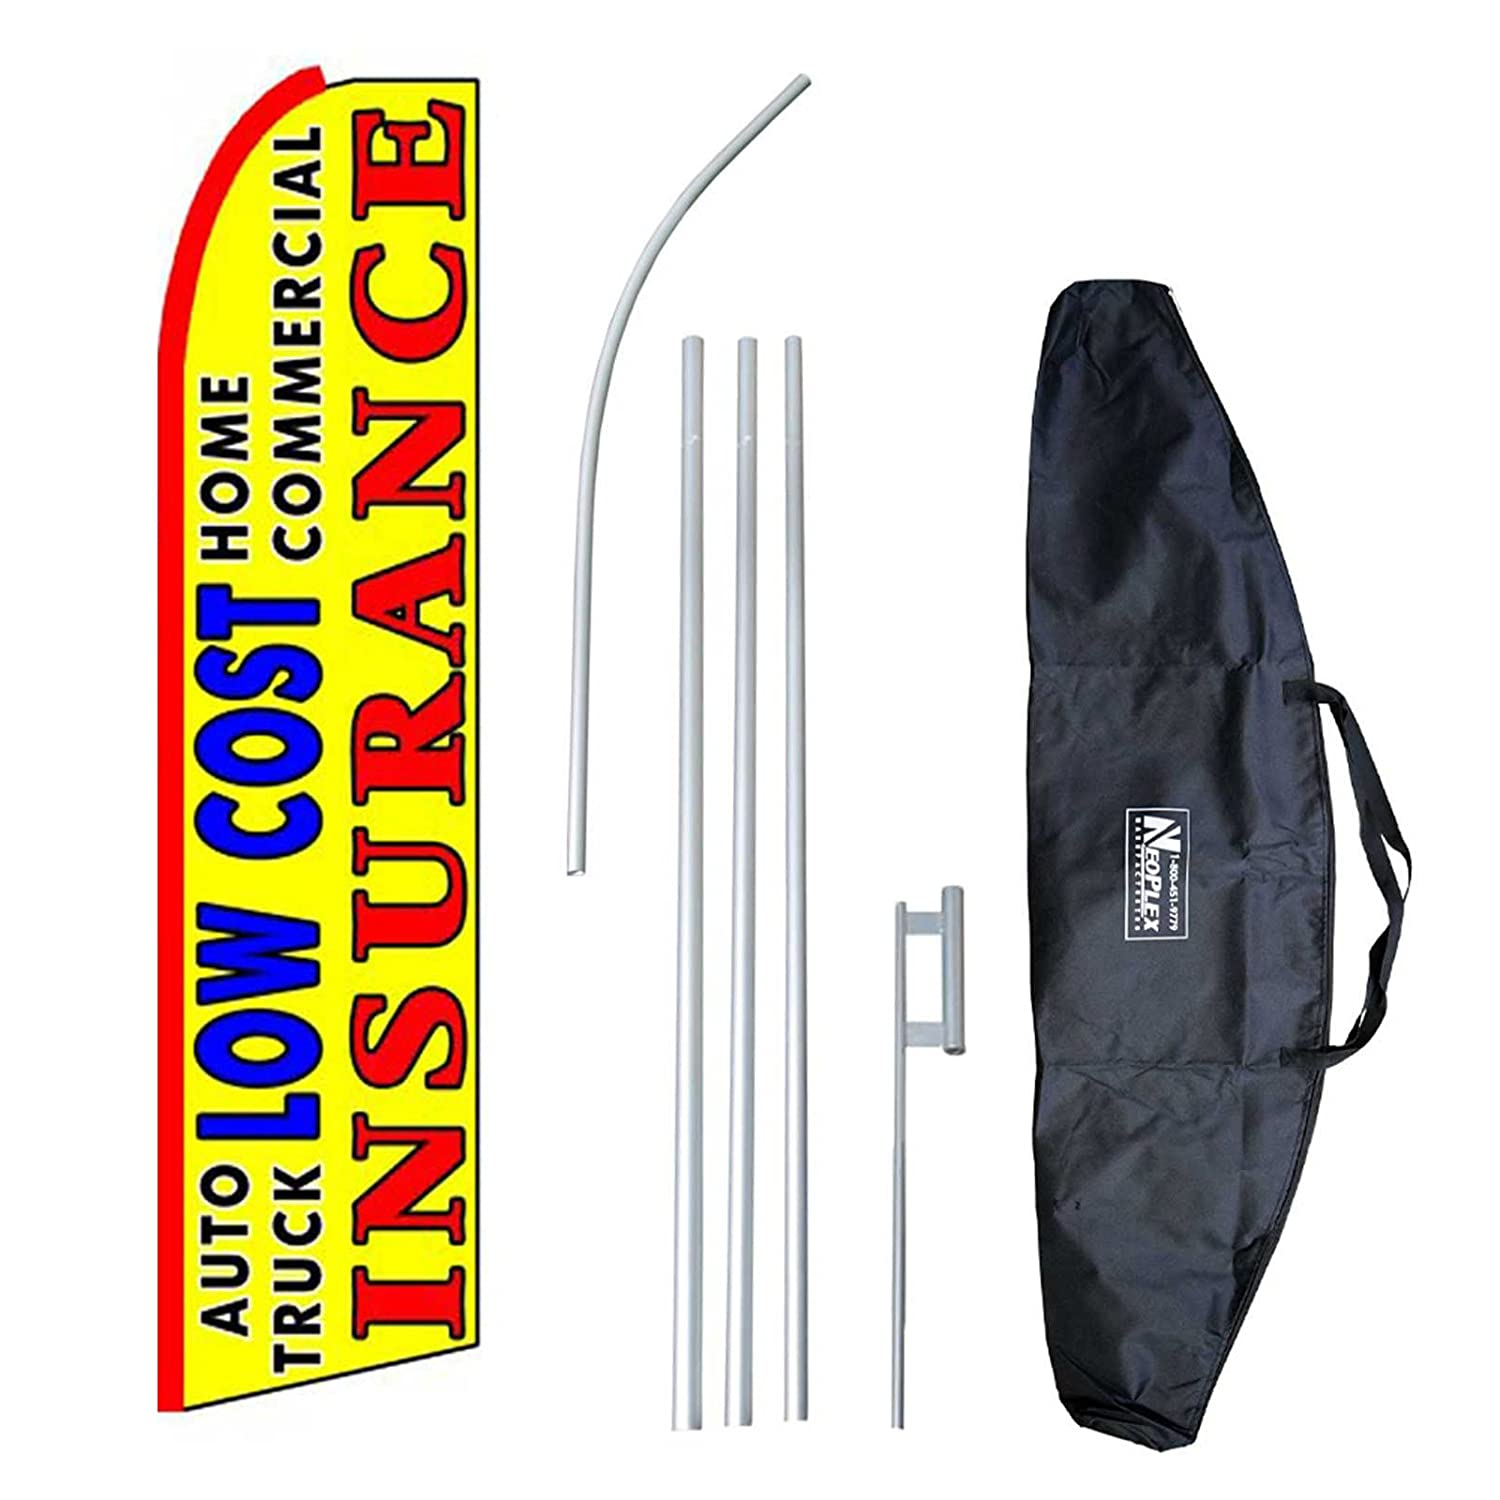 """Low Cost Insurance (Extra Wide)"" 12-foot Swooper Feather Flag and Case Complete Set...includes 12-foot Flag, 15-foot Pole, Ground Spike, and Carrying/Storage Case"